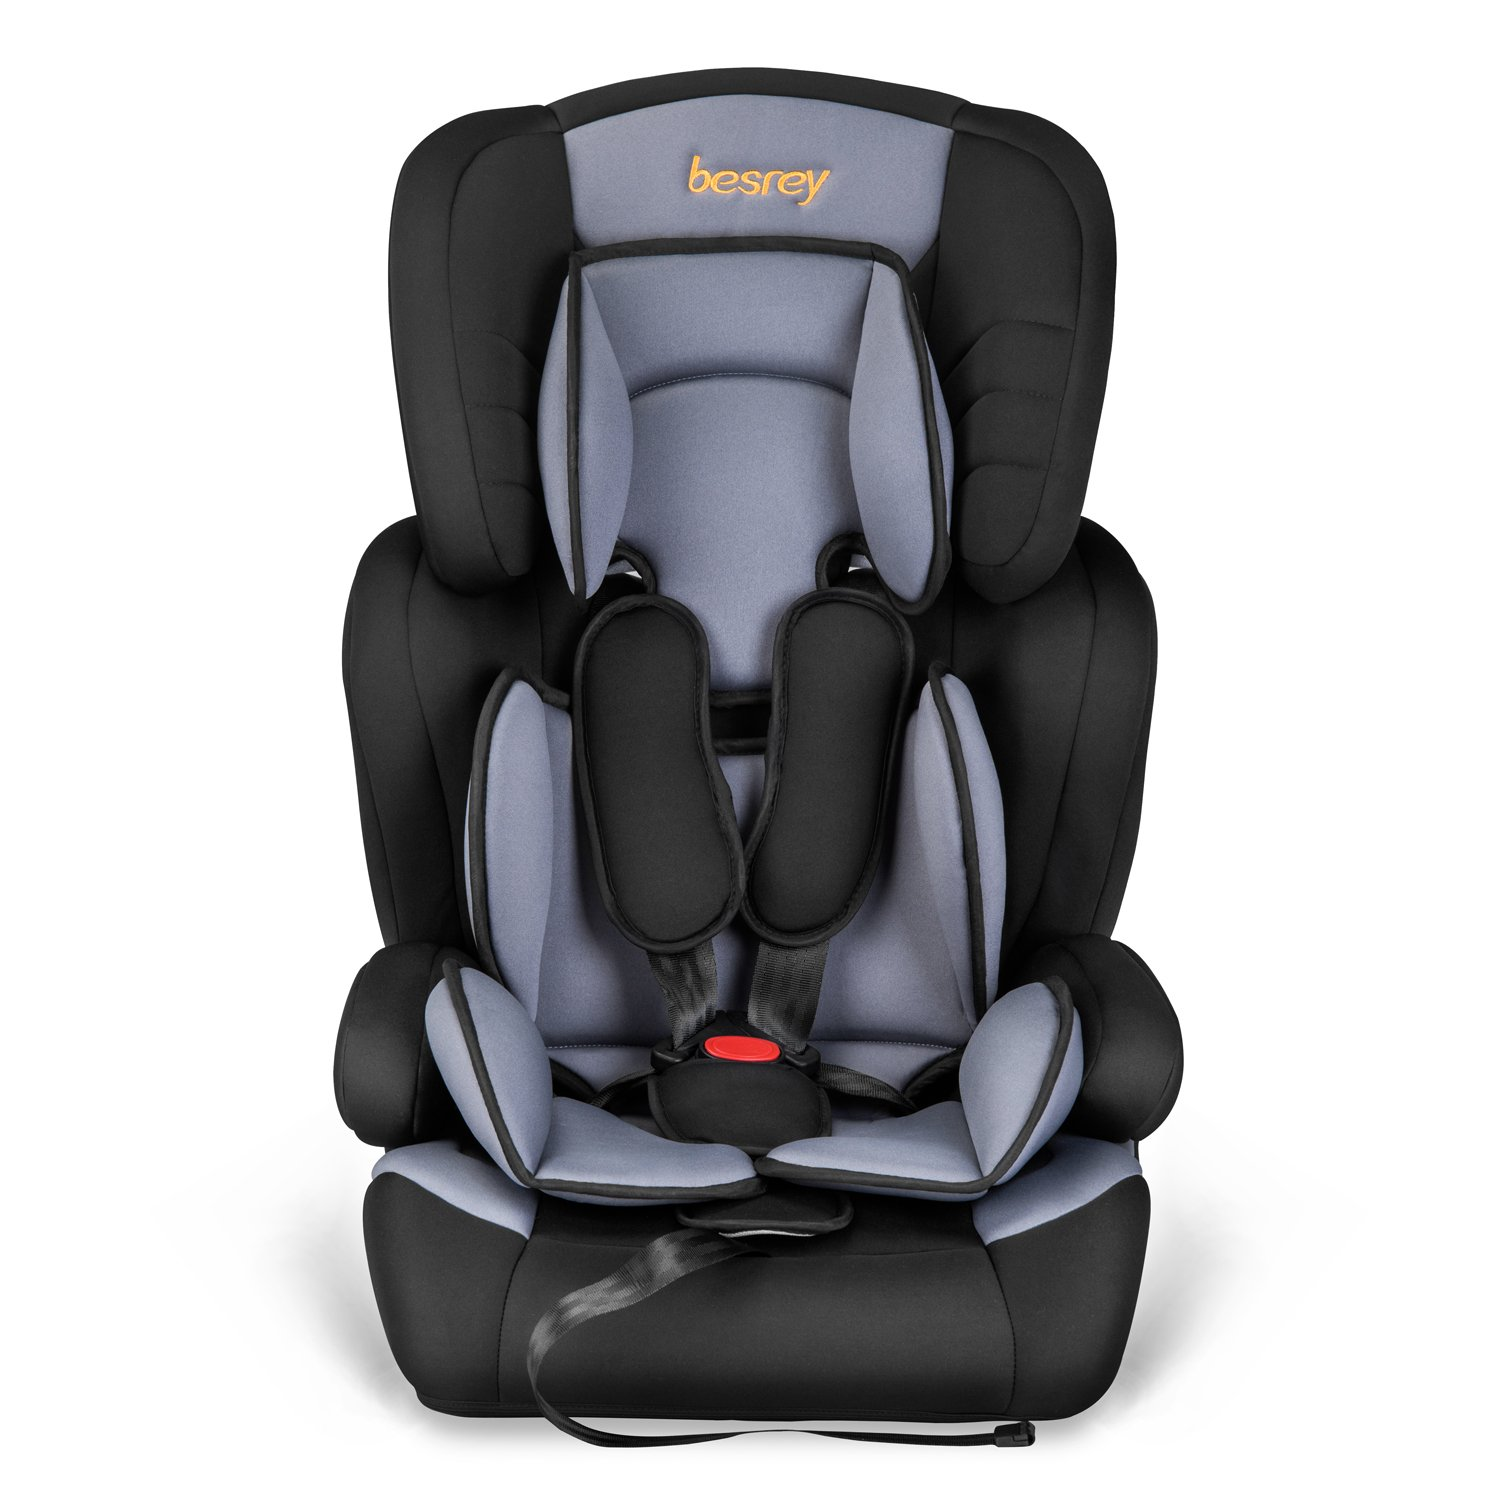 Besrey Car Seat Children Group 1 2 3 Car Booster Fit from 9 Months-12 Years Black and Blue